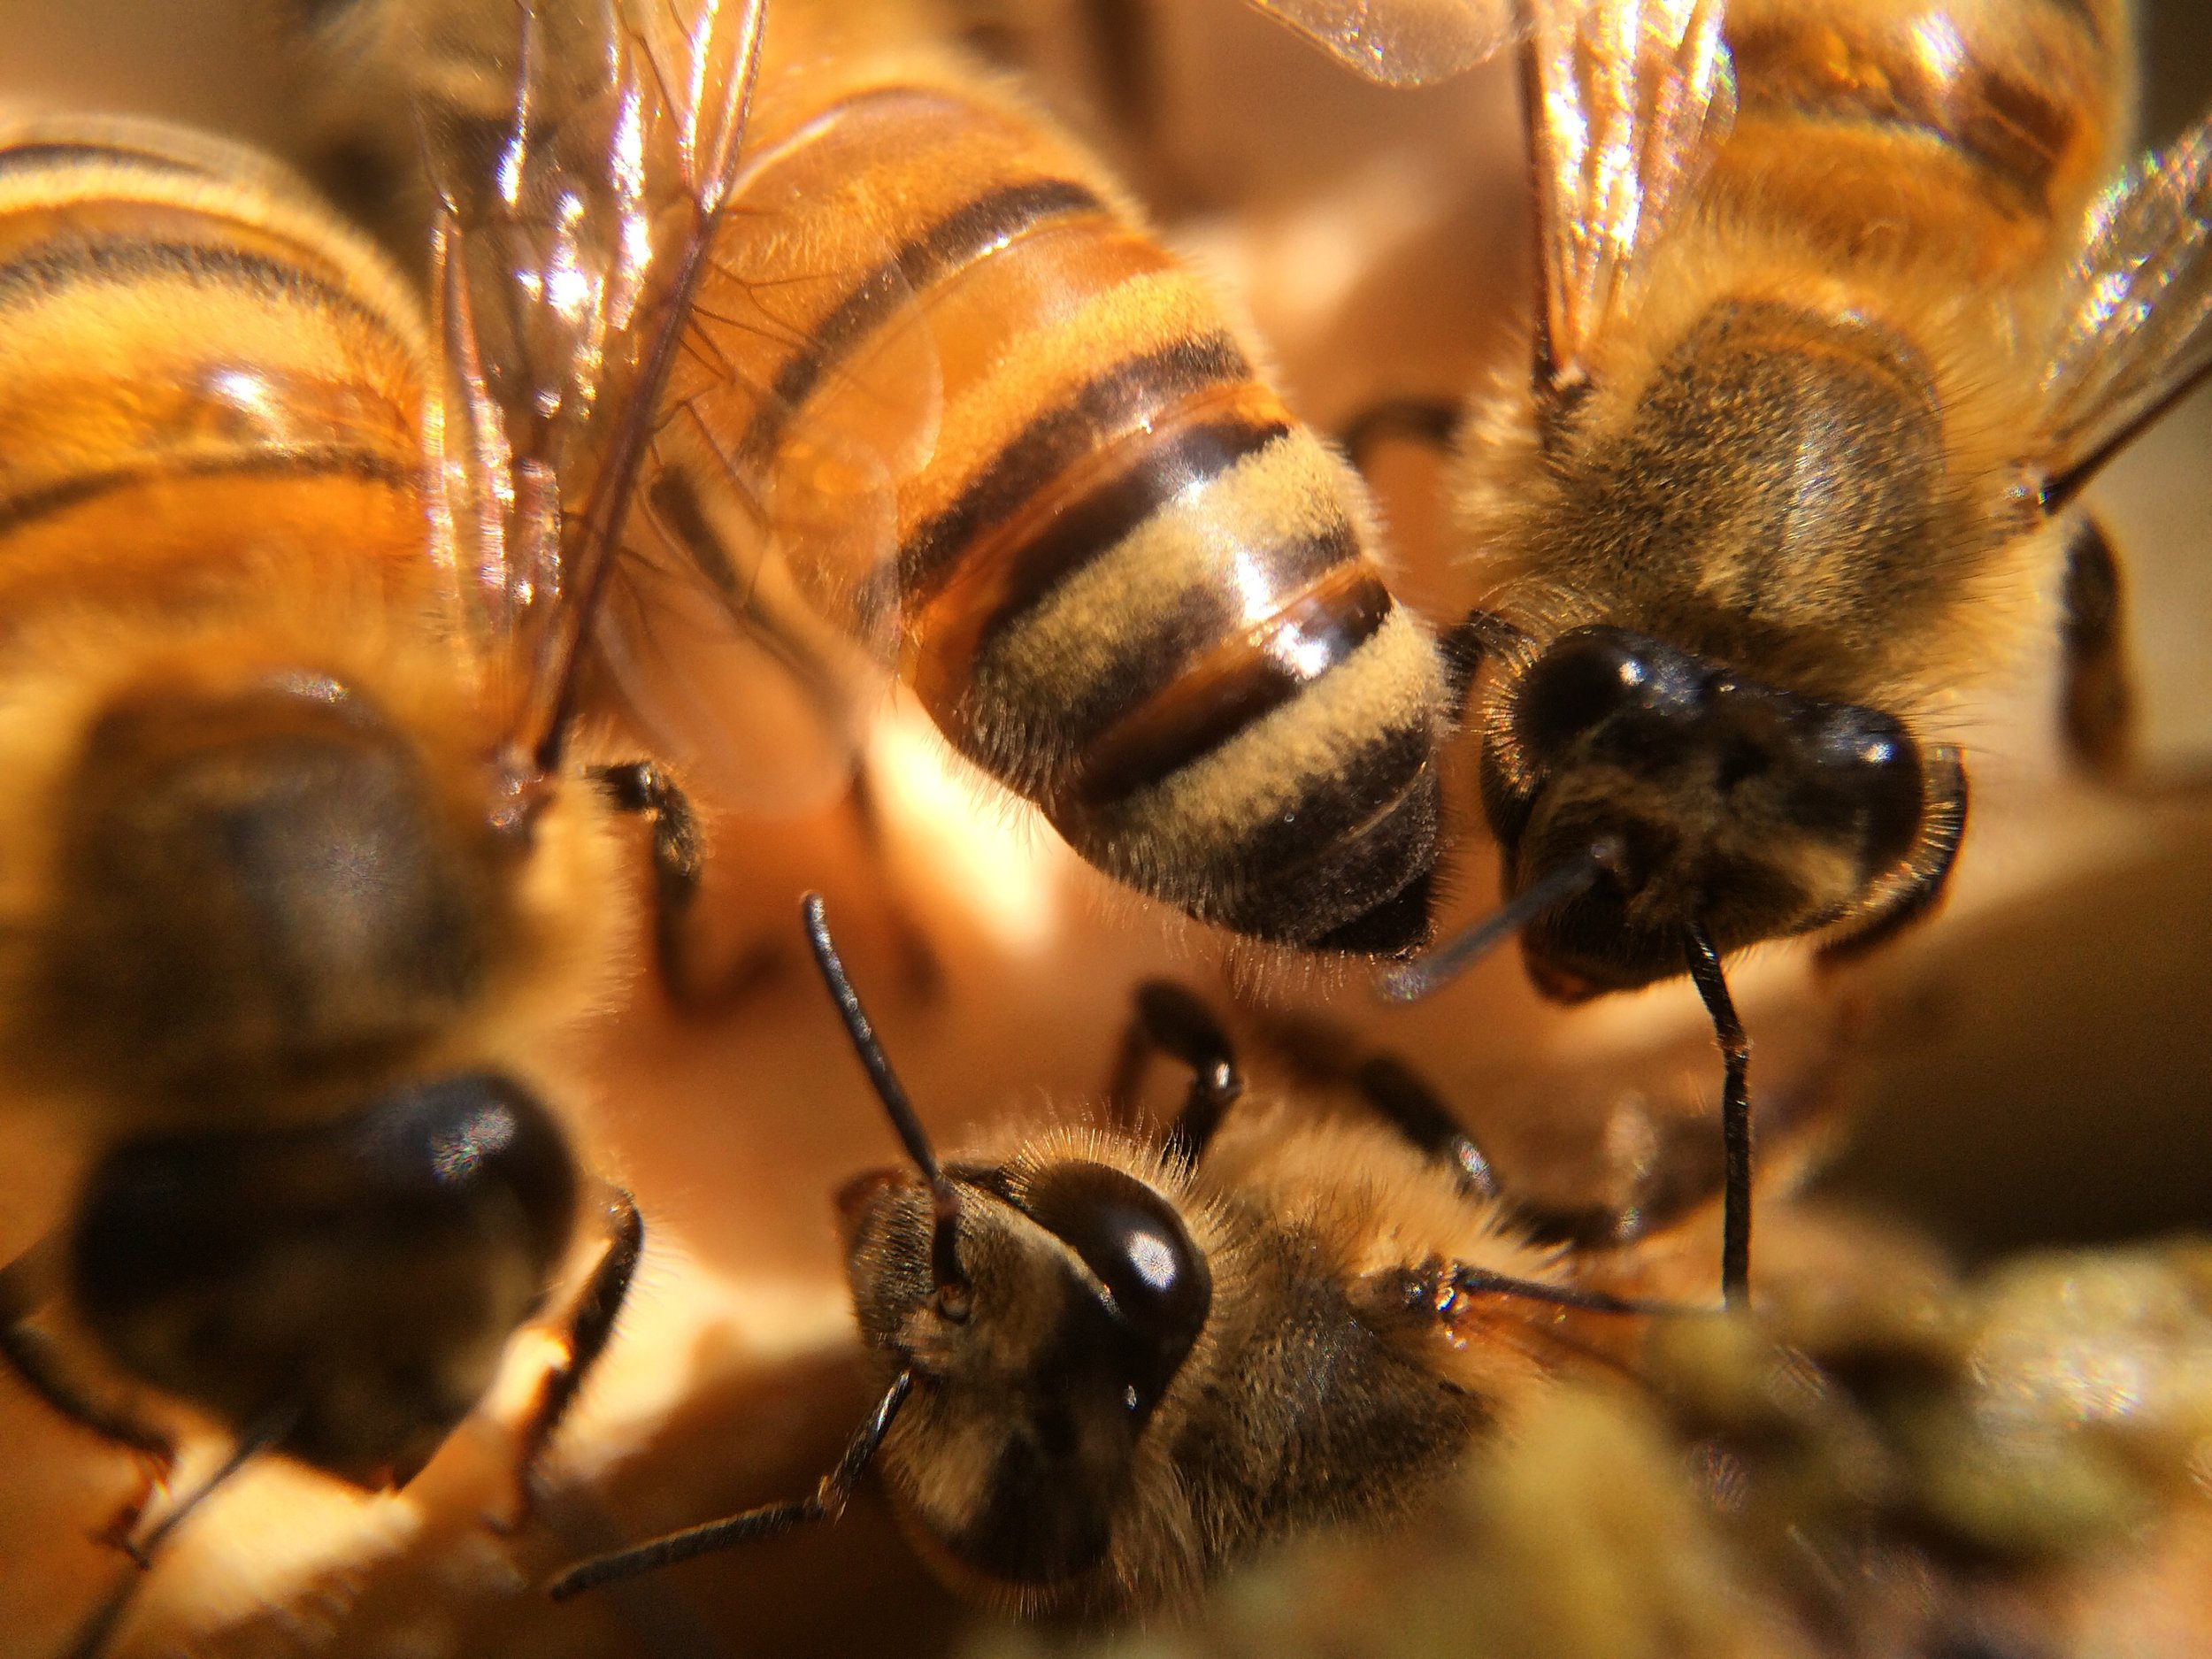 Macro x14 magnification of worker bees.